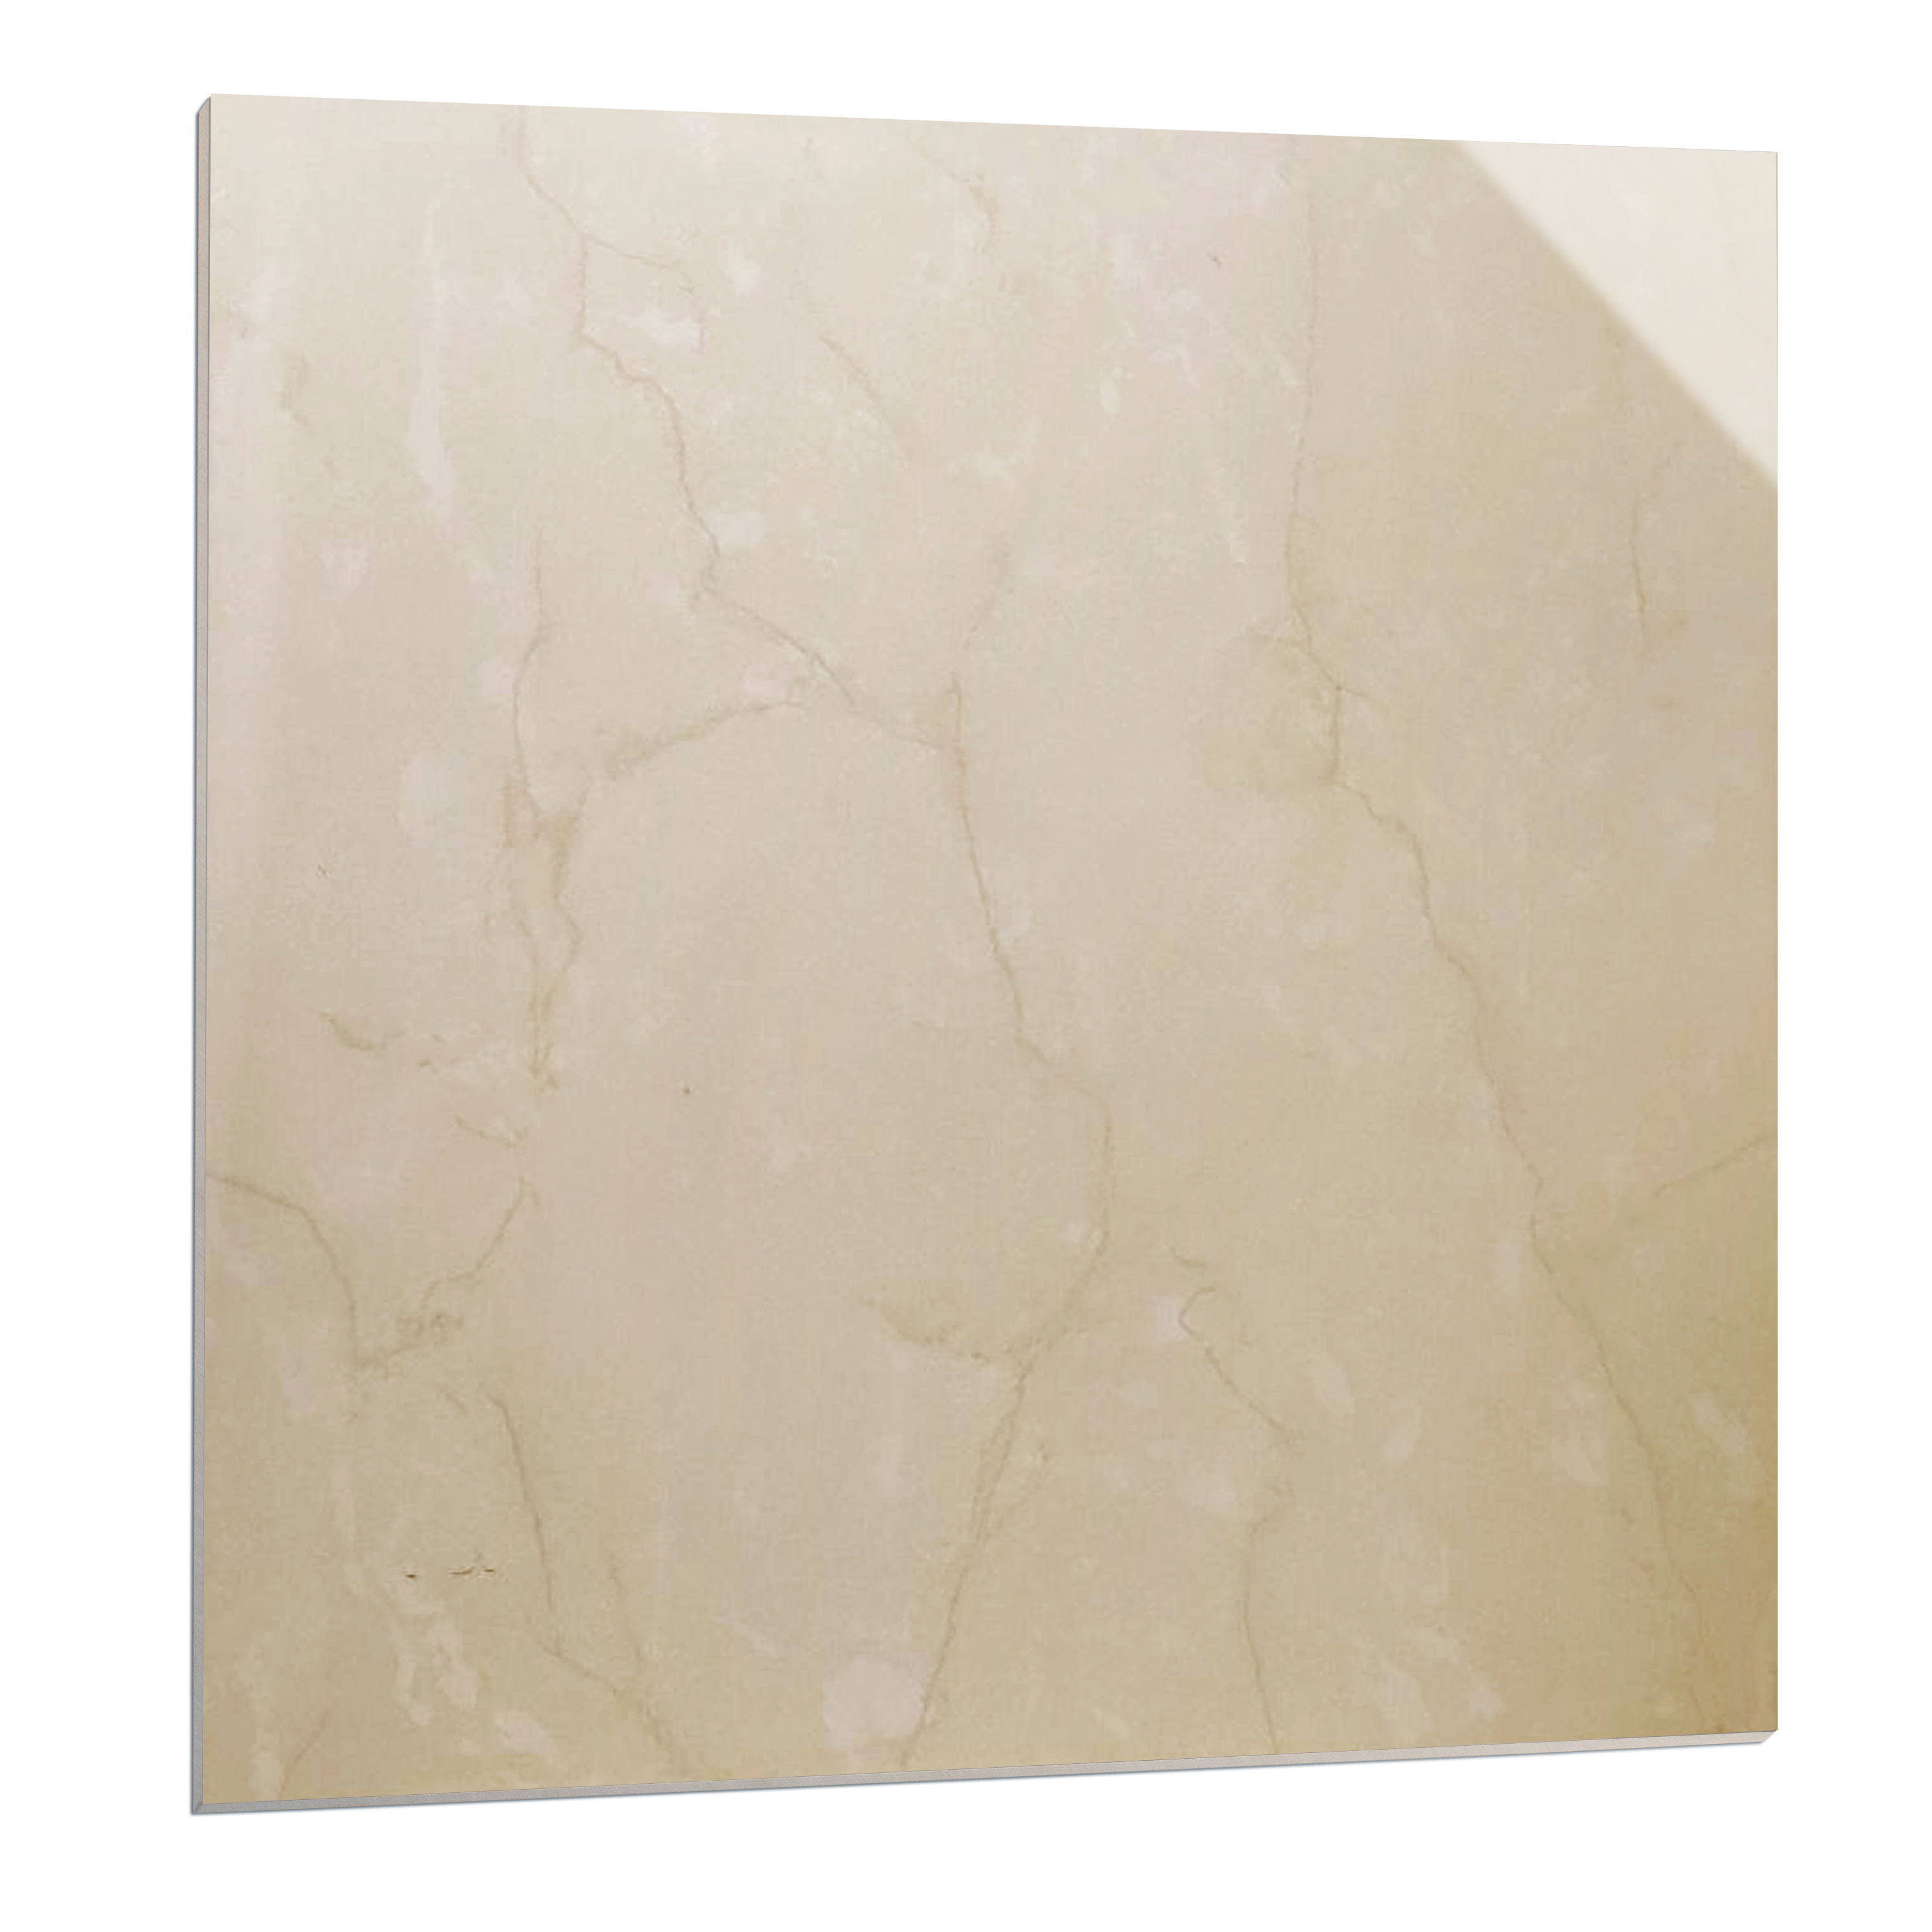 Cheap Price 600x600 Polished Porcelain Interior Floor Soluble Salt Tile